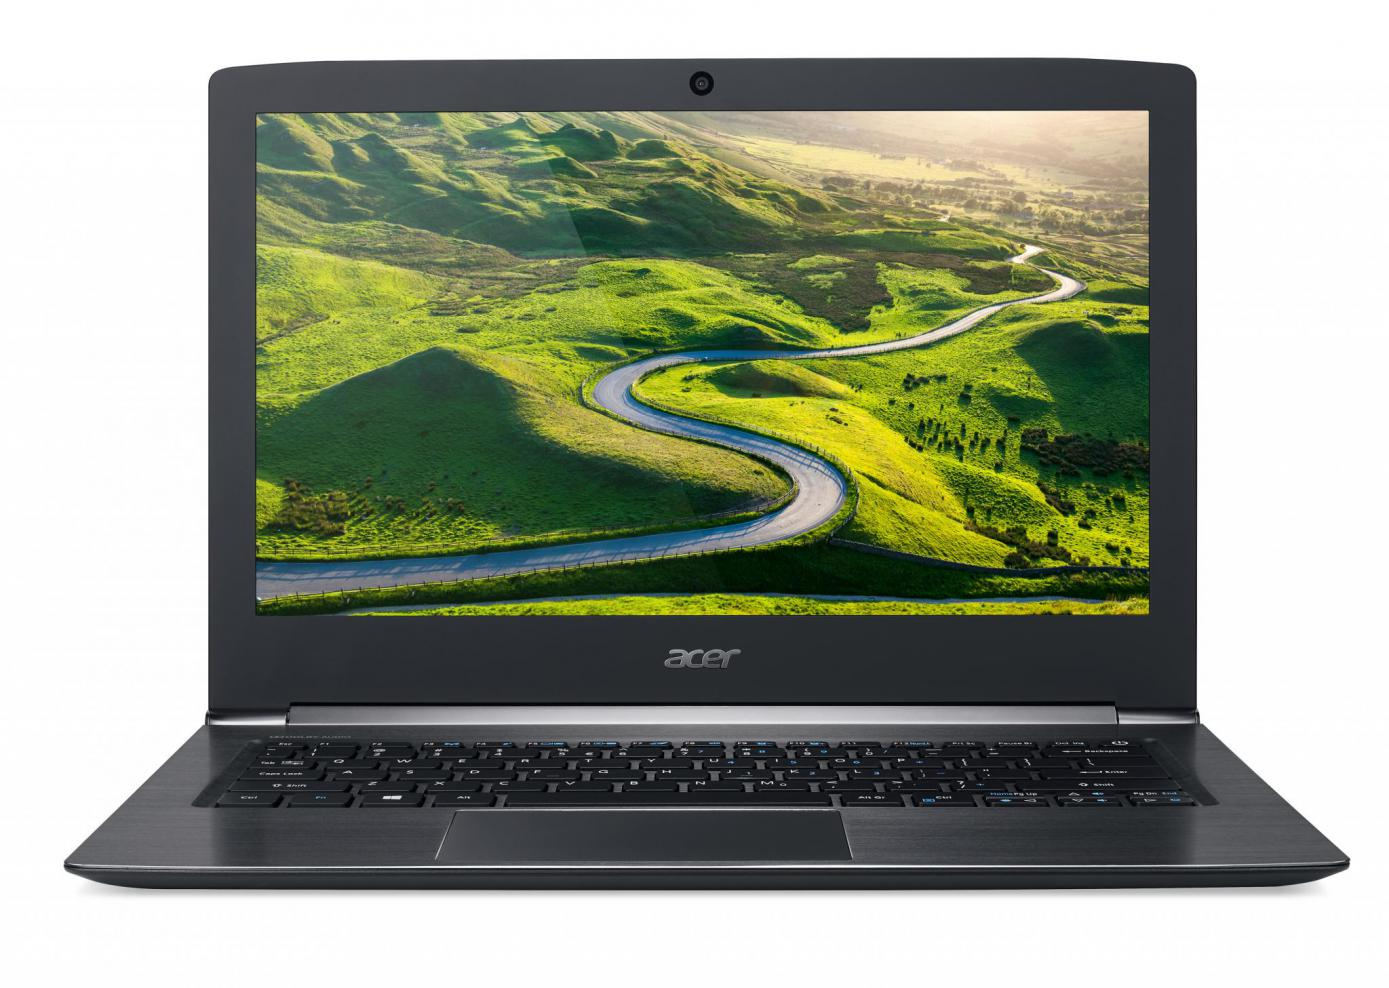 Acer Aspire S13 600 03